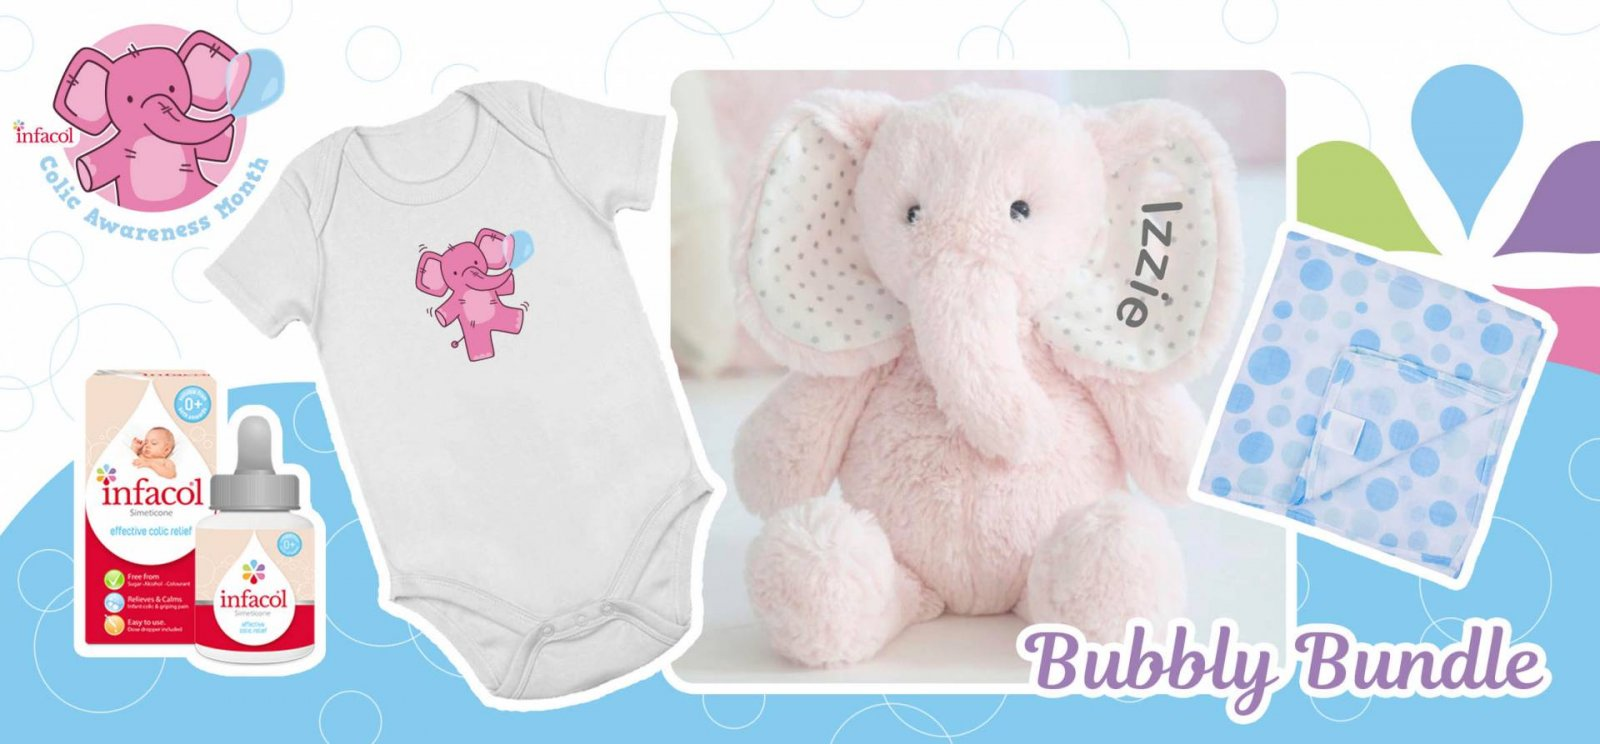 Prize image contains baby vest with pink elephant on, pale pink cuddle toy elephant and infacol